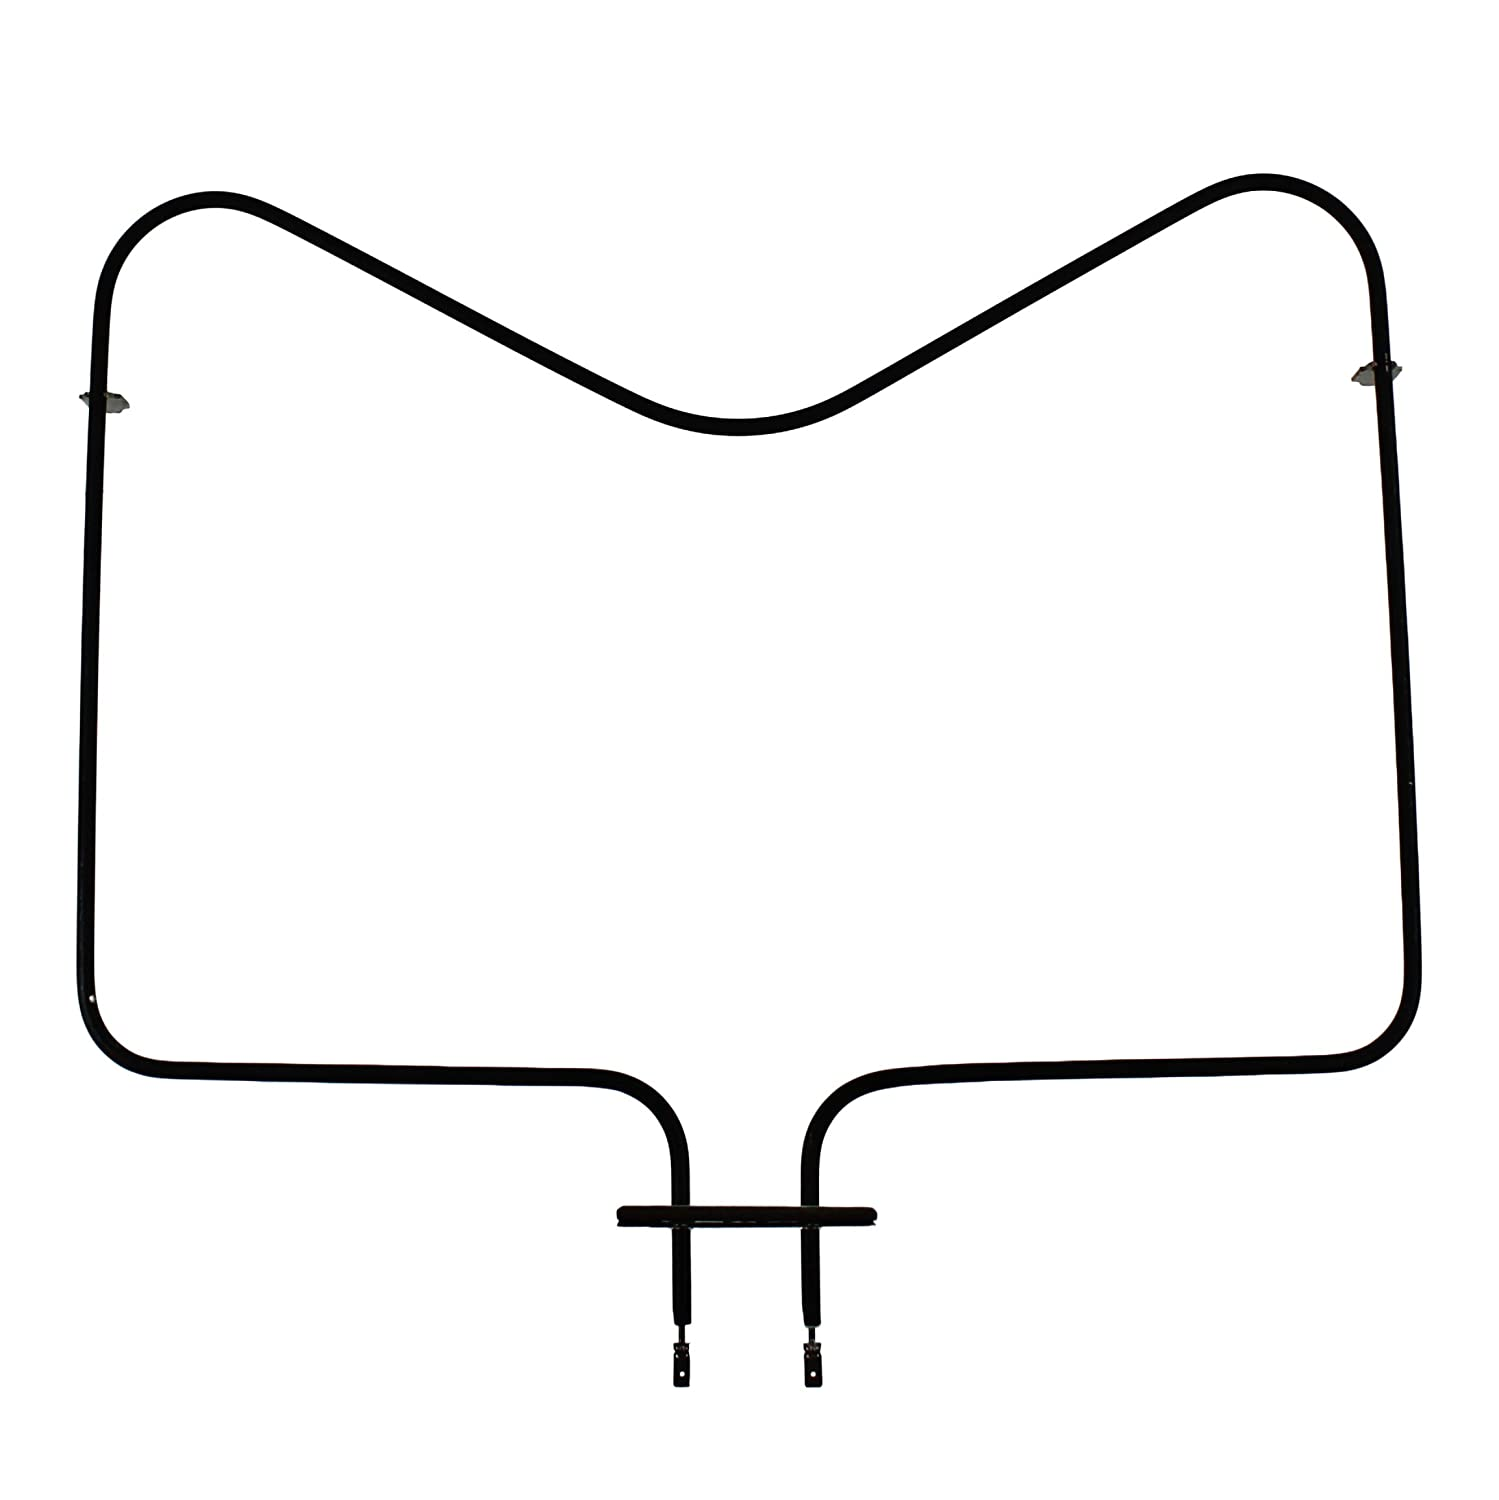 Supplying Demand 9750213 Oven Bake Element Compatible With Whirlpool Fits PS11747109